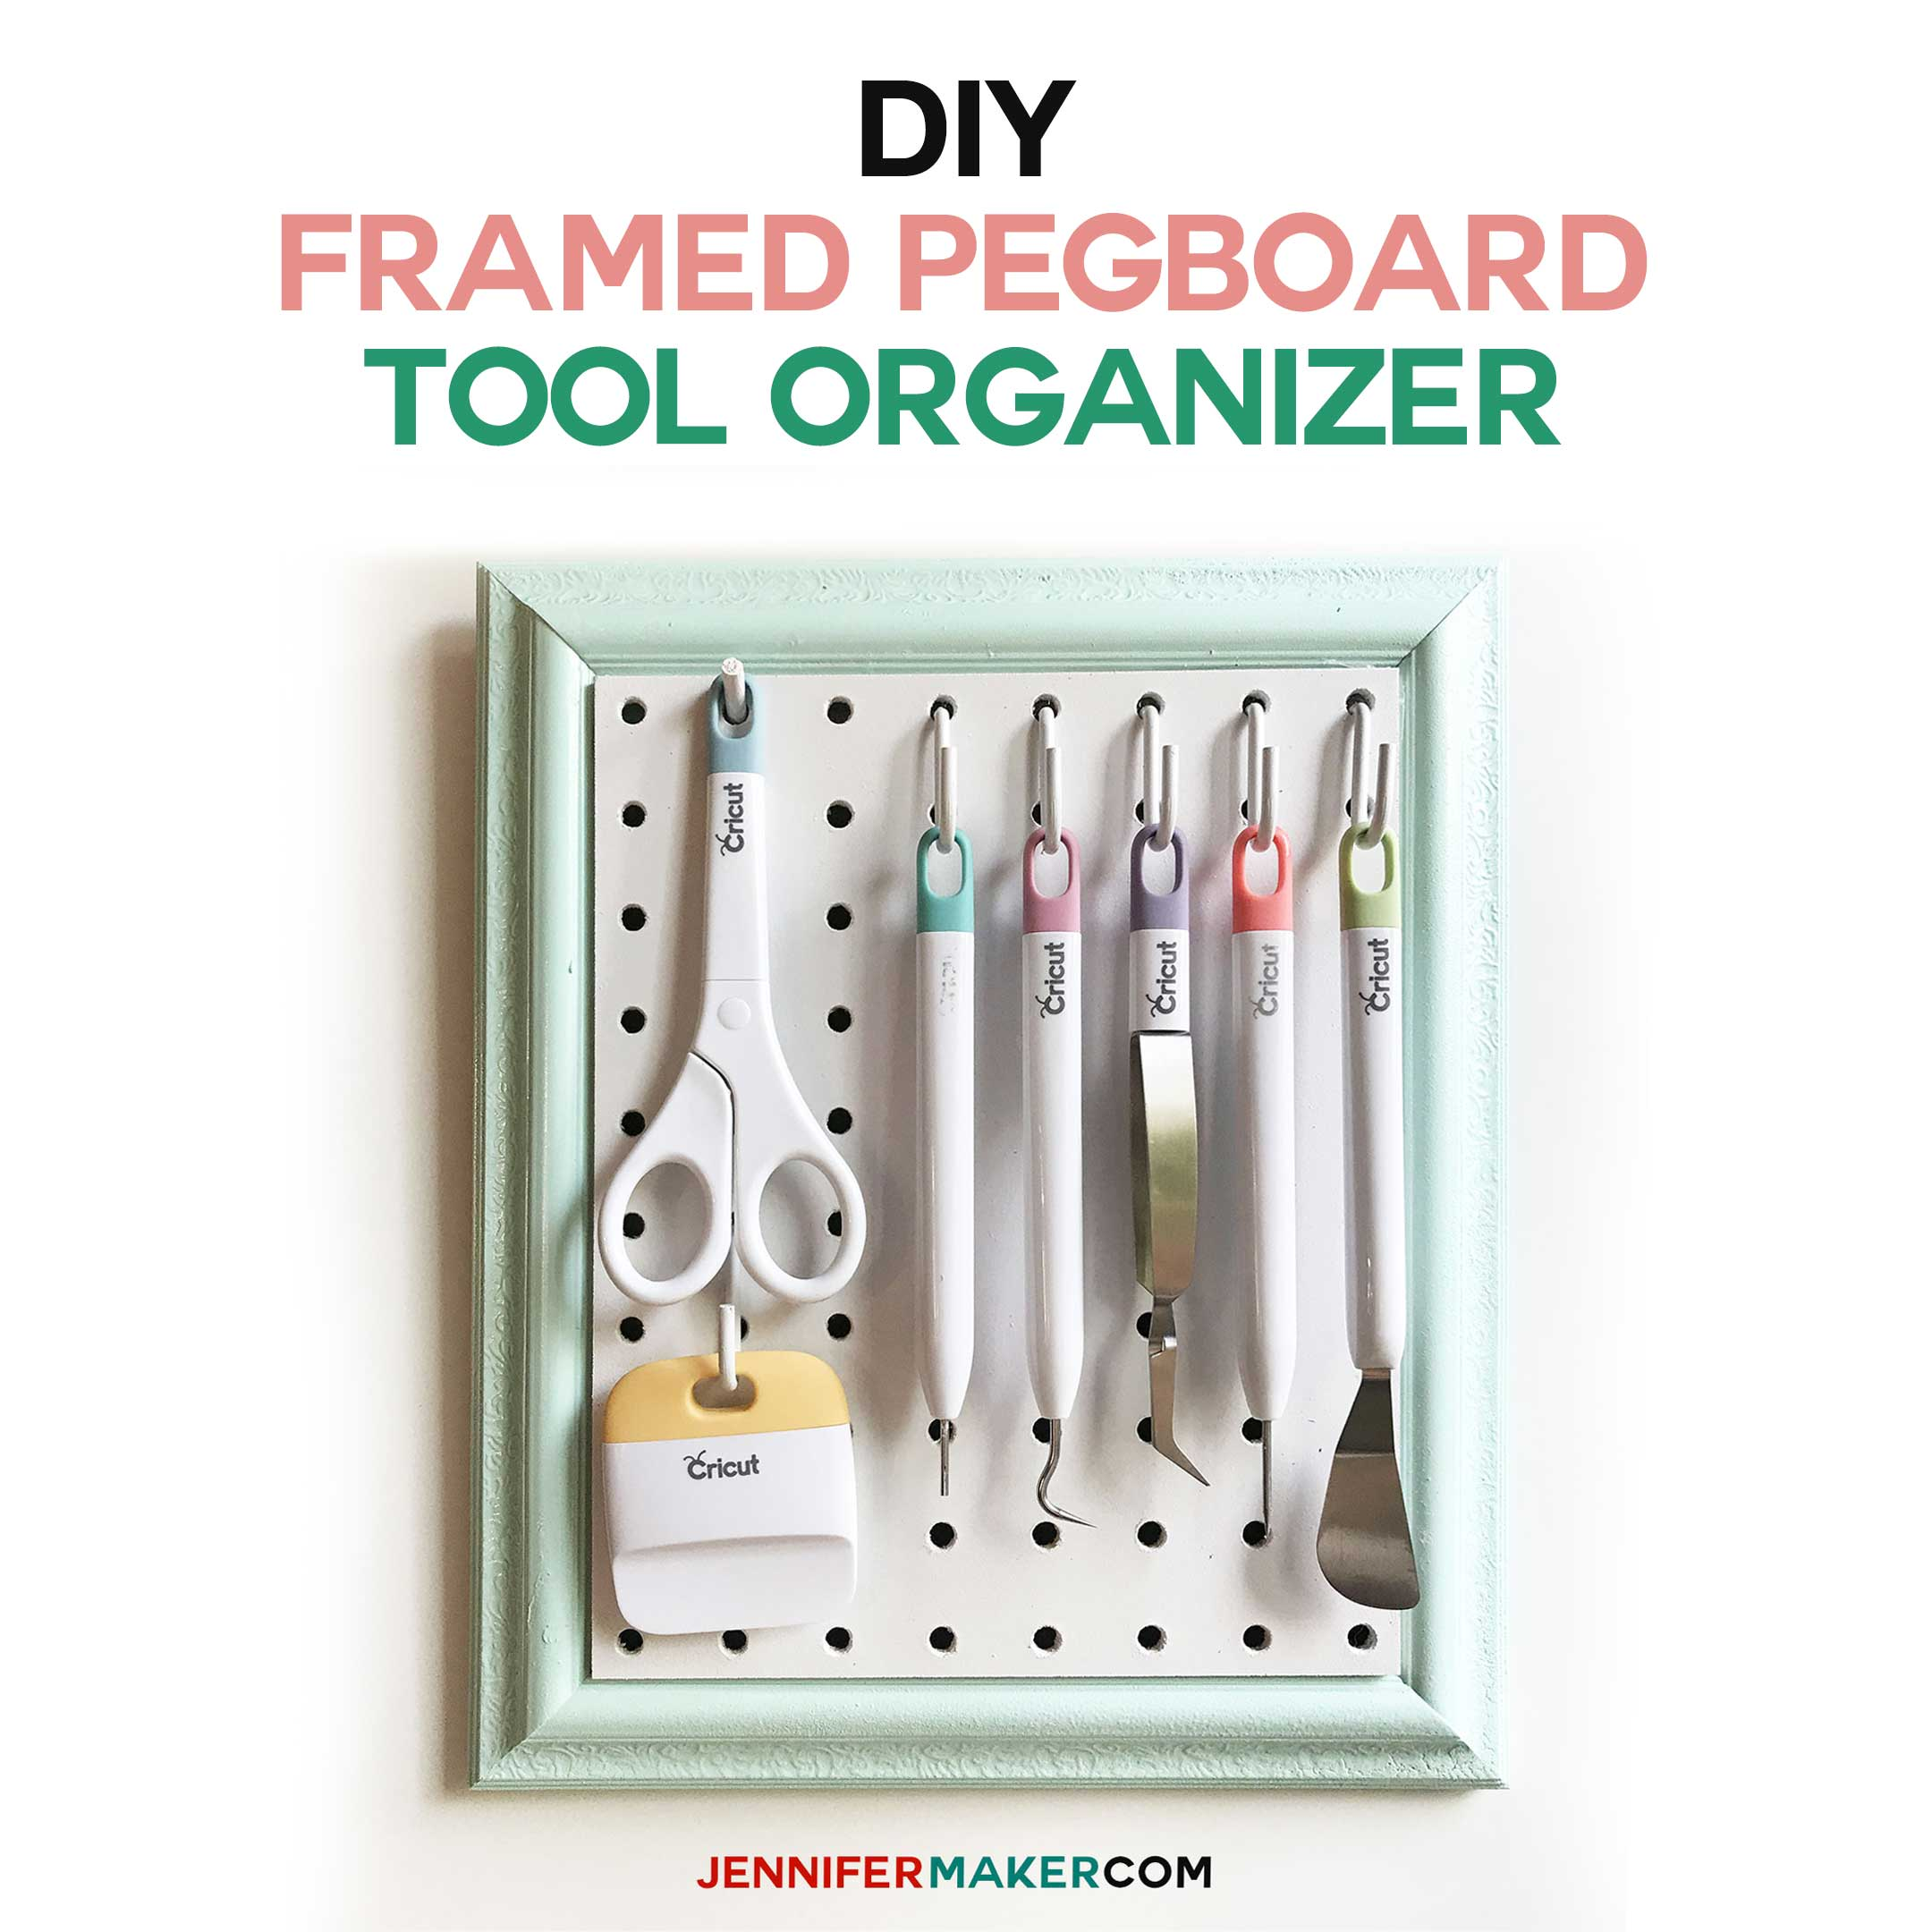 diy framed pegboard craft organizer for tools jennifer maker